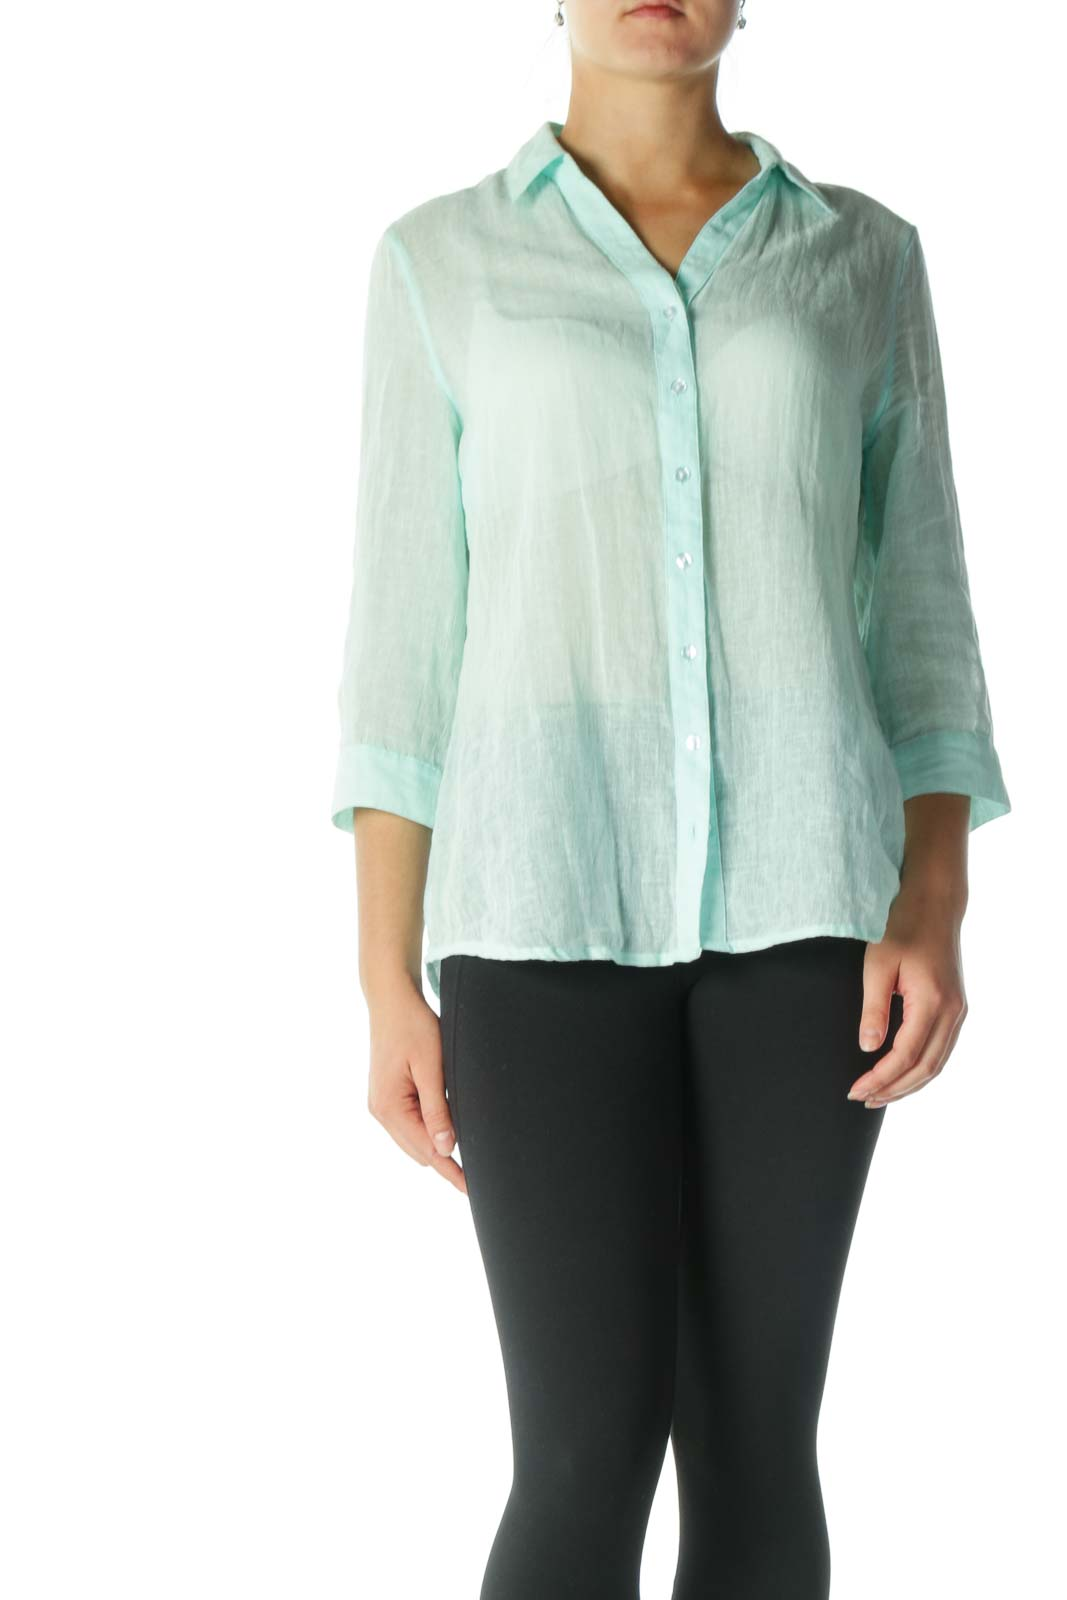 Mint See Through Button Down Shirt